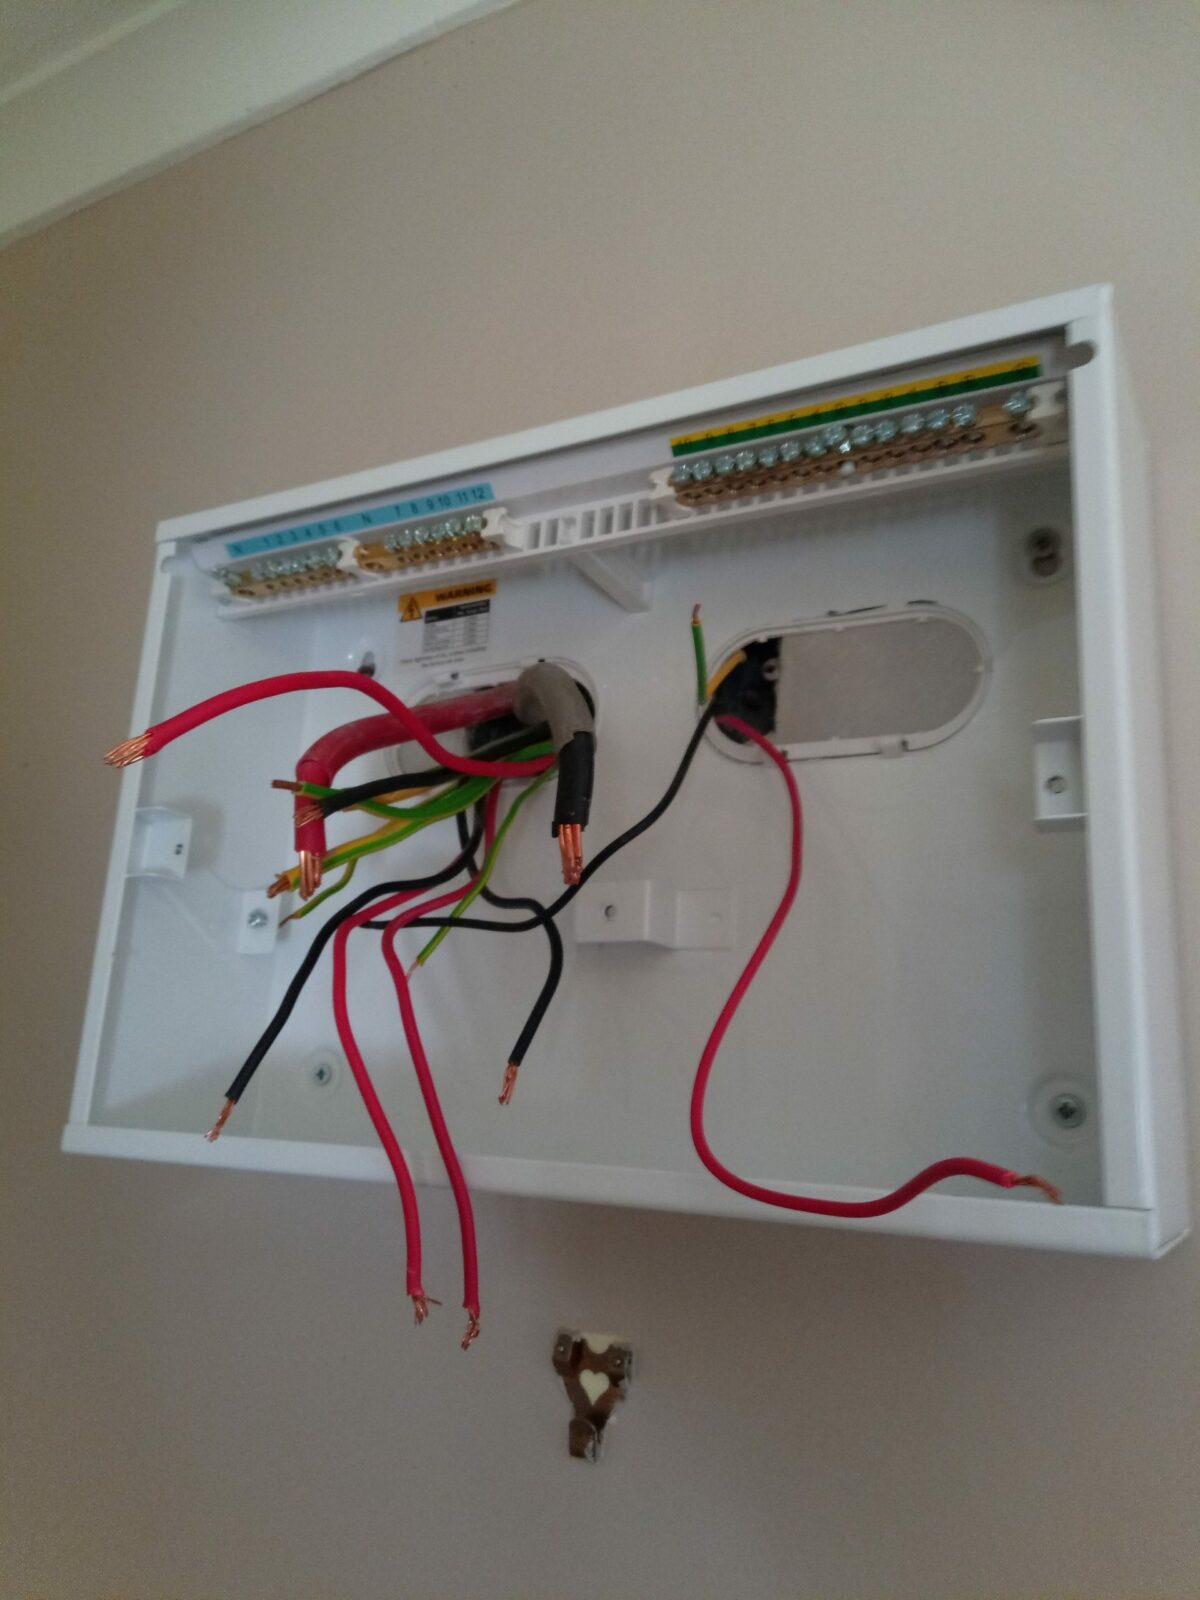 Another old fashion fuse box about to be replaced 5